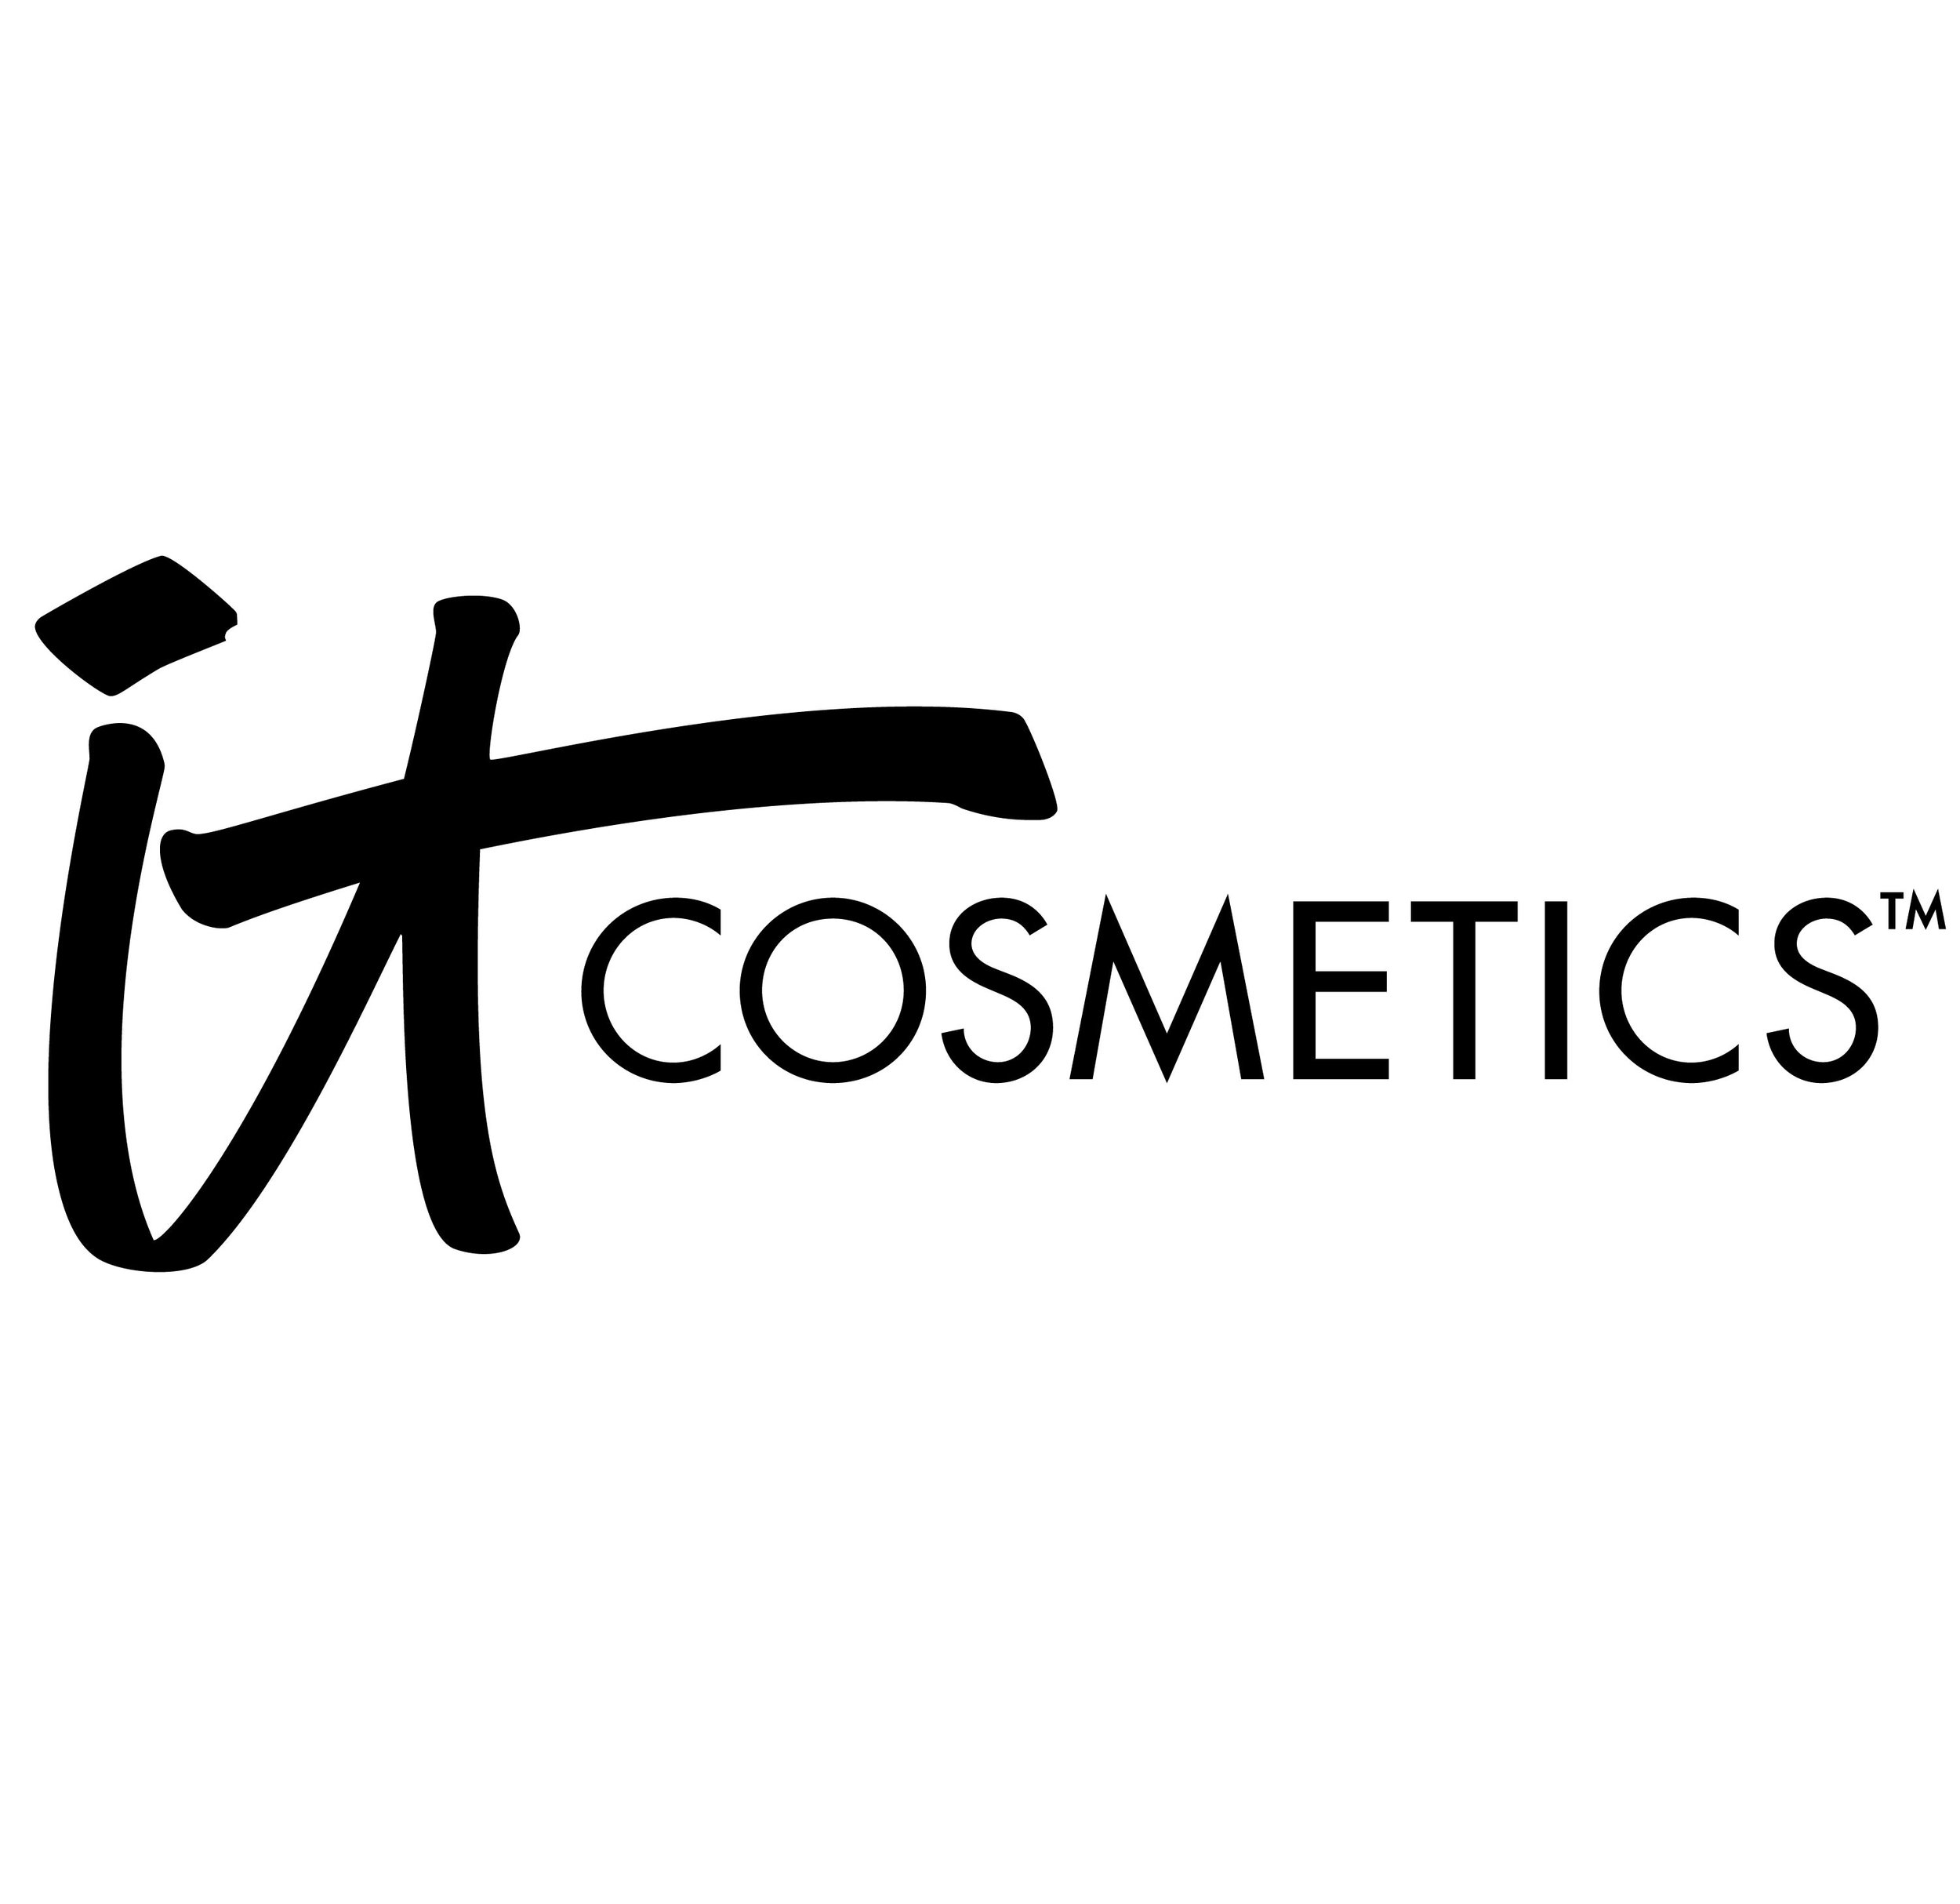 IT Cosmetics Featured On ABC's